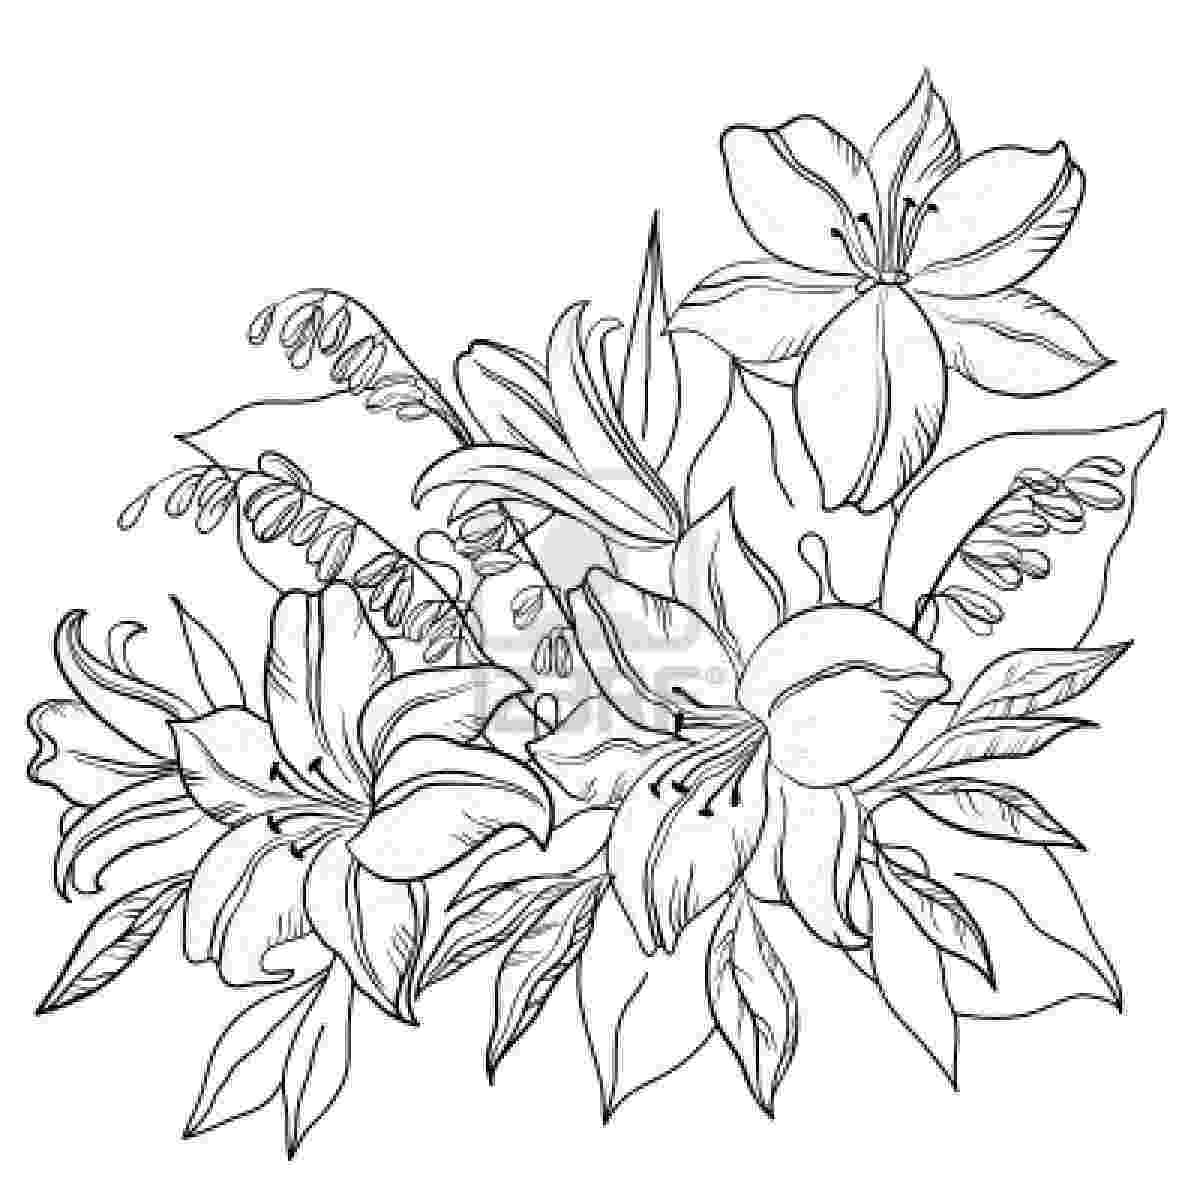 coloring flowers free printable flower coloring pages for kids best coloring flowers 1 1